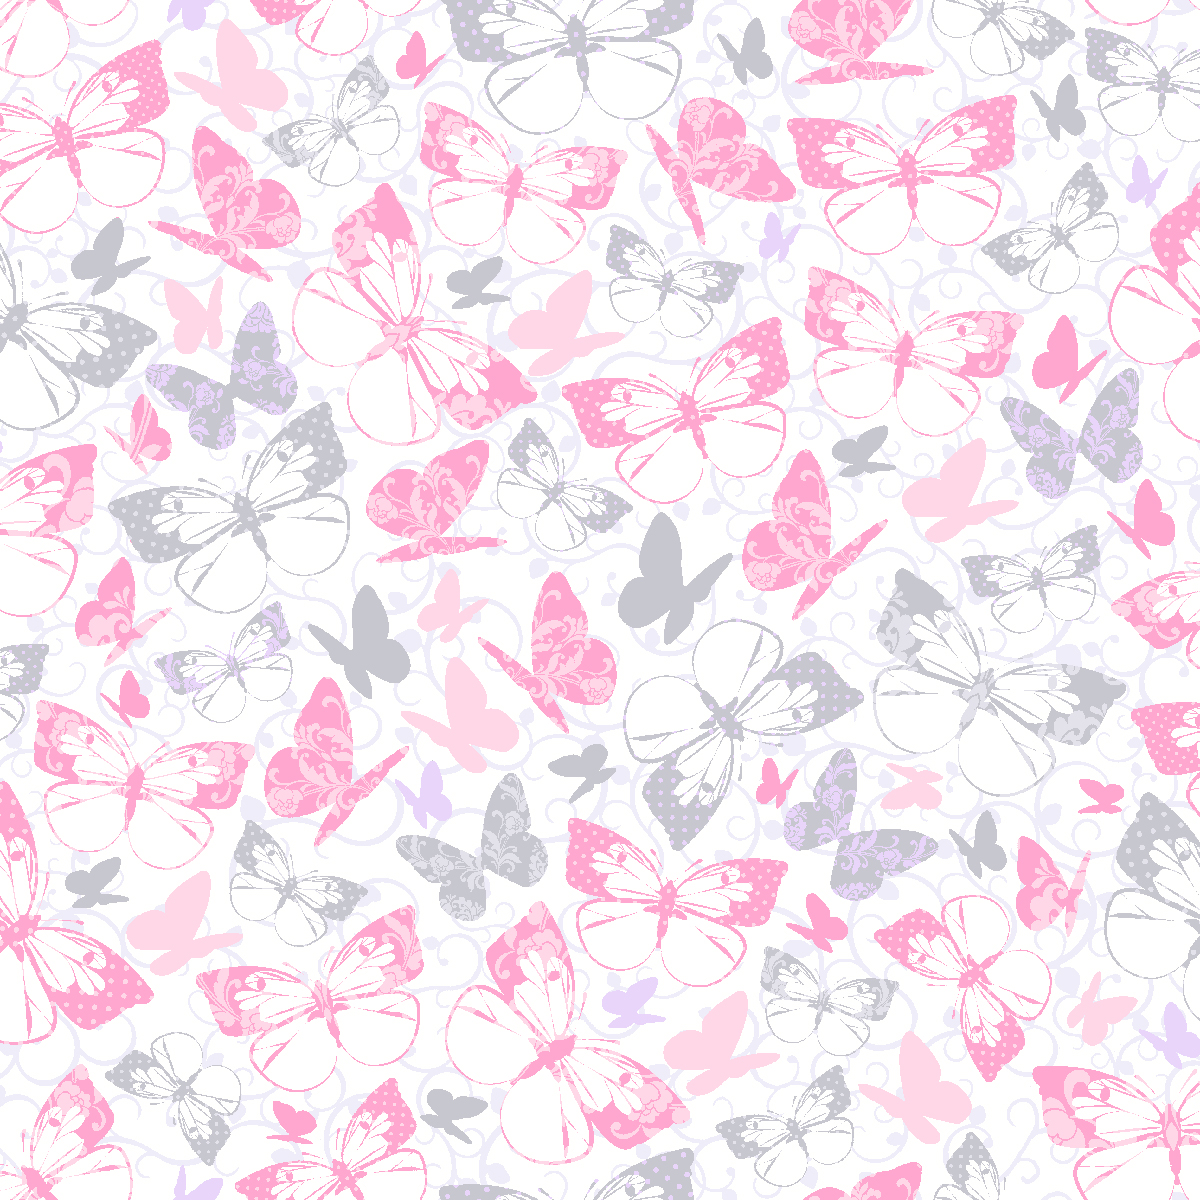 Waverly Inspirations 100% Cotton Print Fabric 44'' Wide, 140 Gsm, Quilt Crafts Cut By The Yard